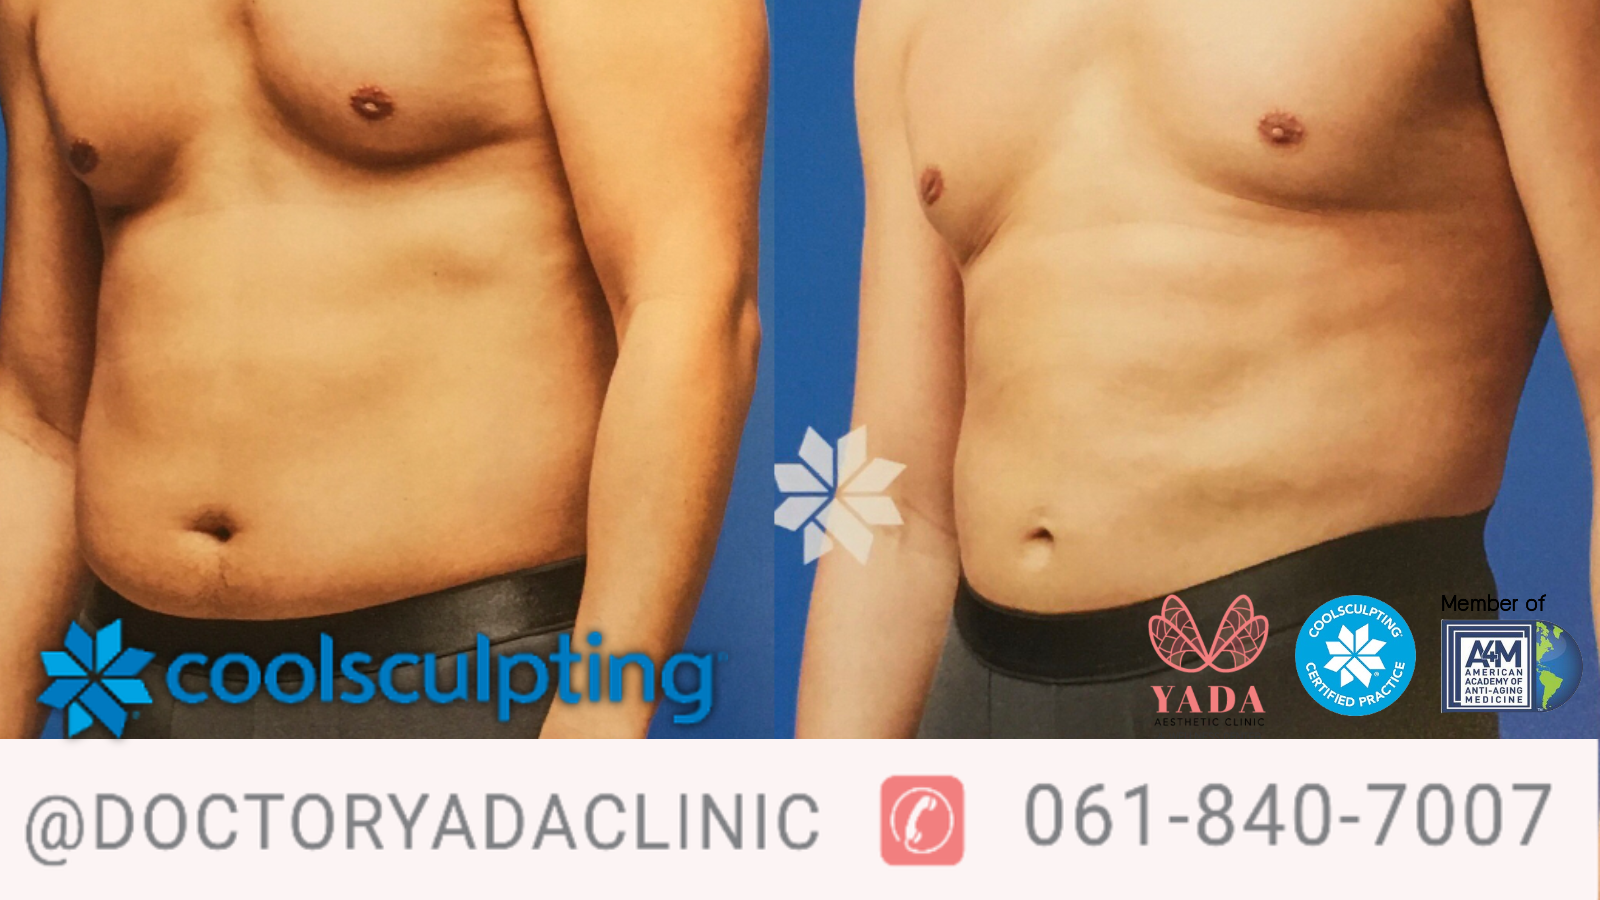 CoolSculpting Fat Body Shape Doctor Yada Clinic Pattaya.png